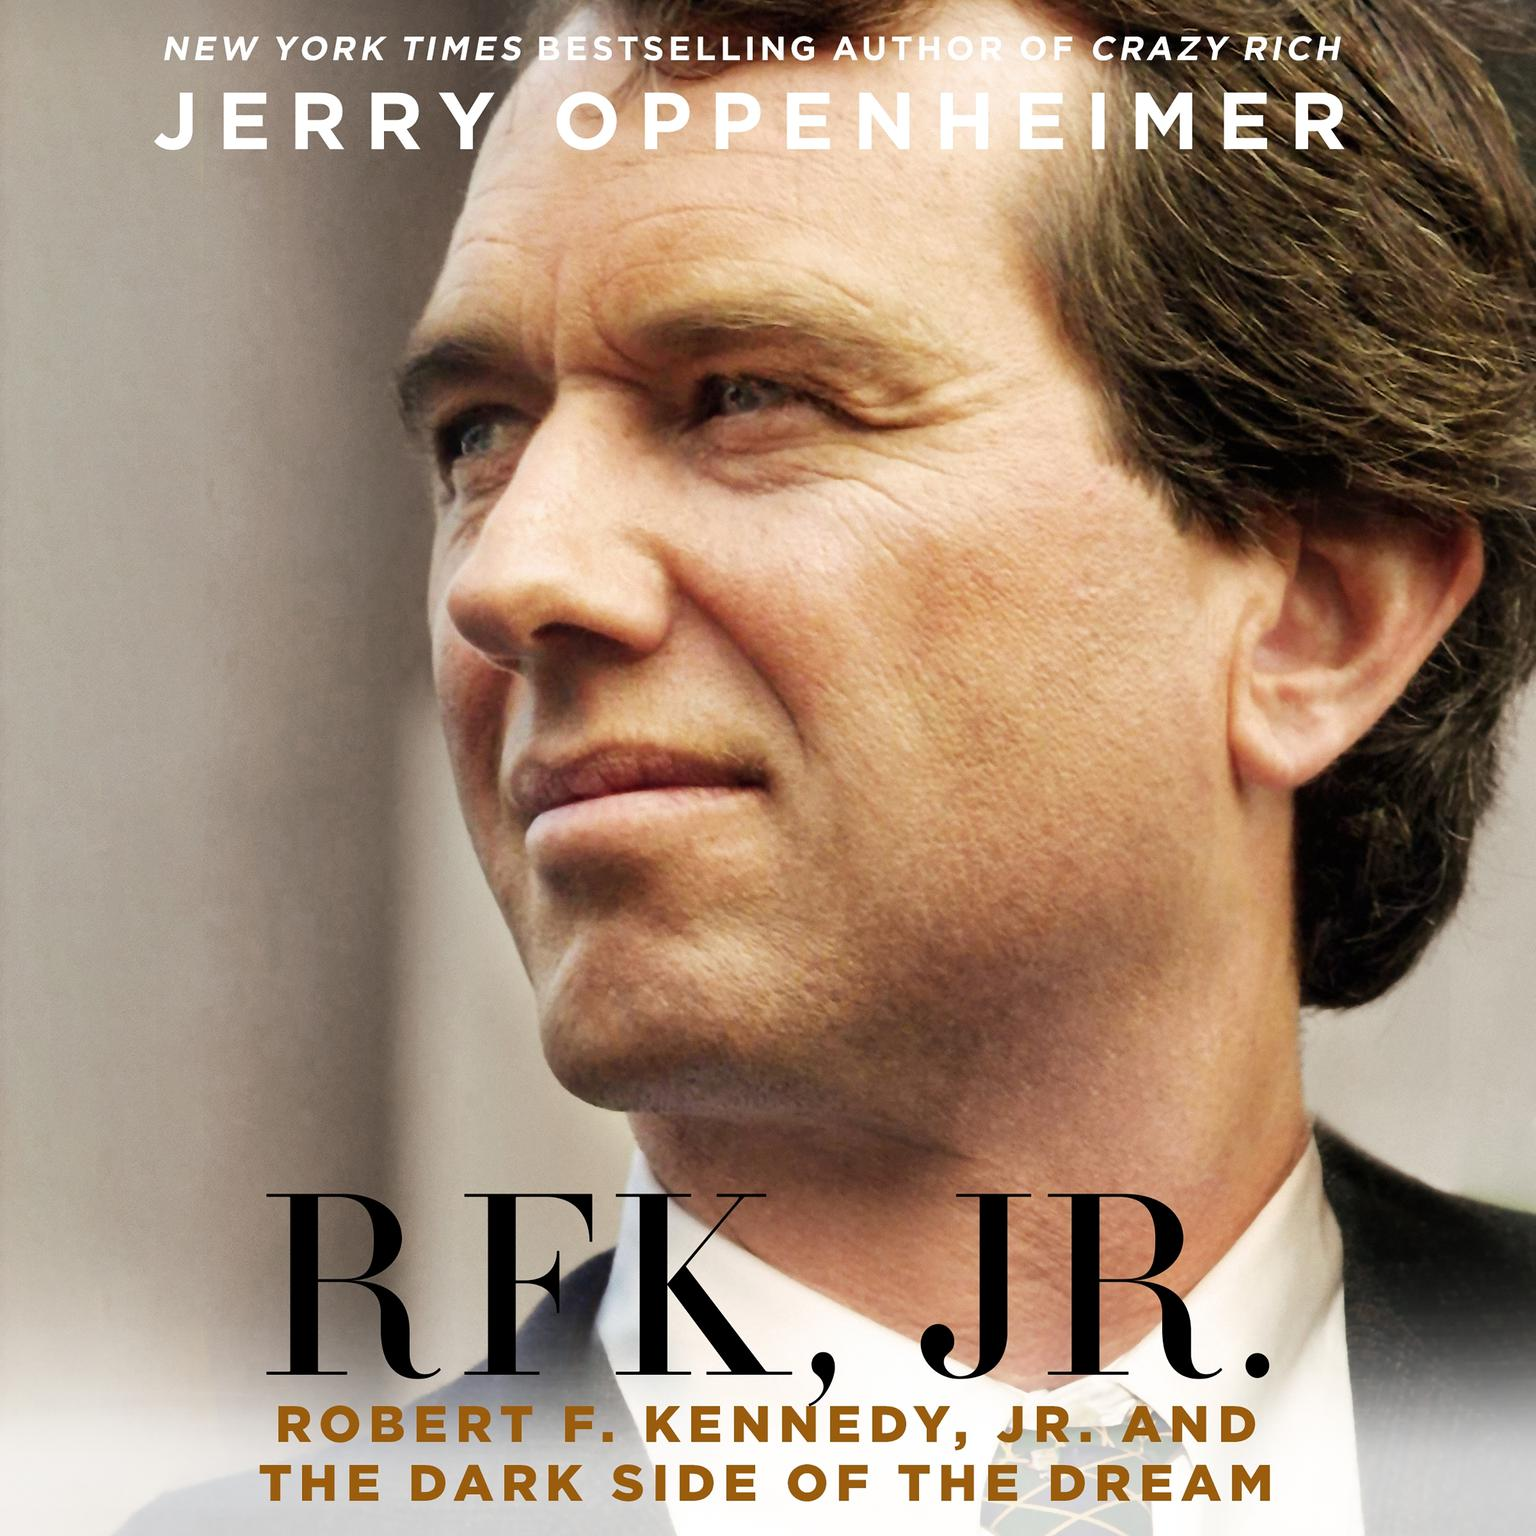 Printable RFK Jr.: Robert F. Kennedy Jr. and the Dark Side of the Dream Audiobook Cover Art